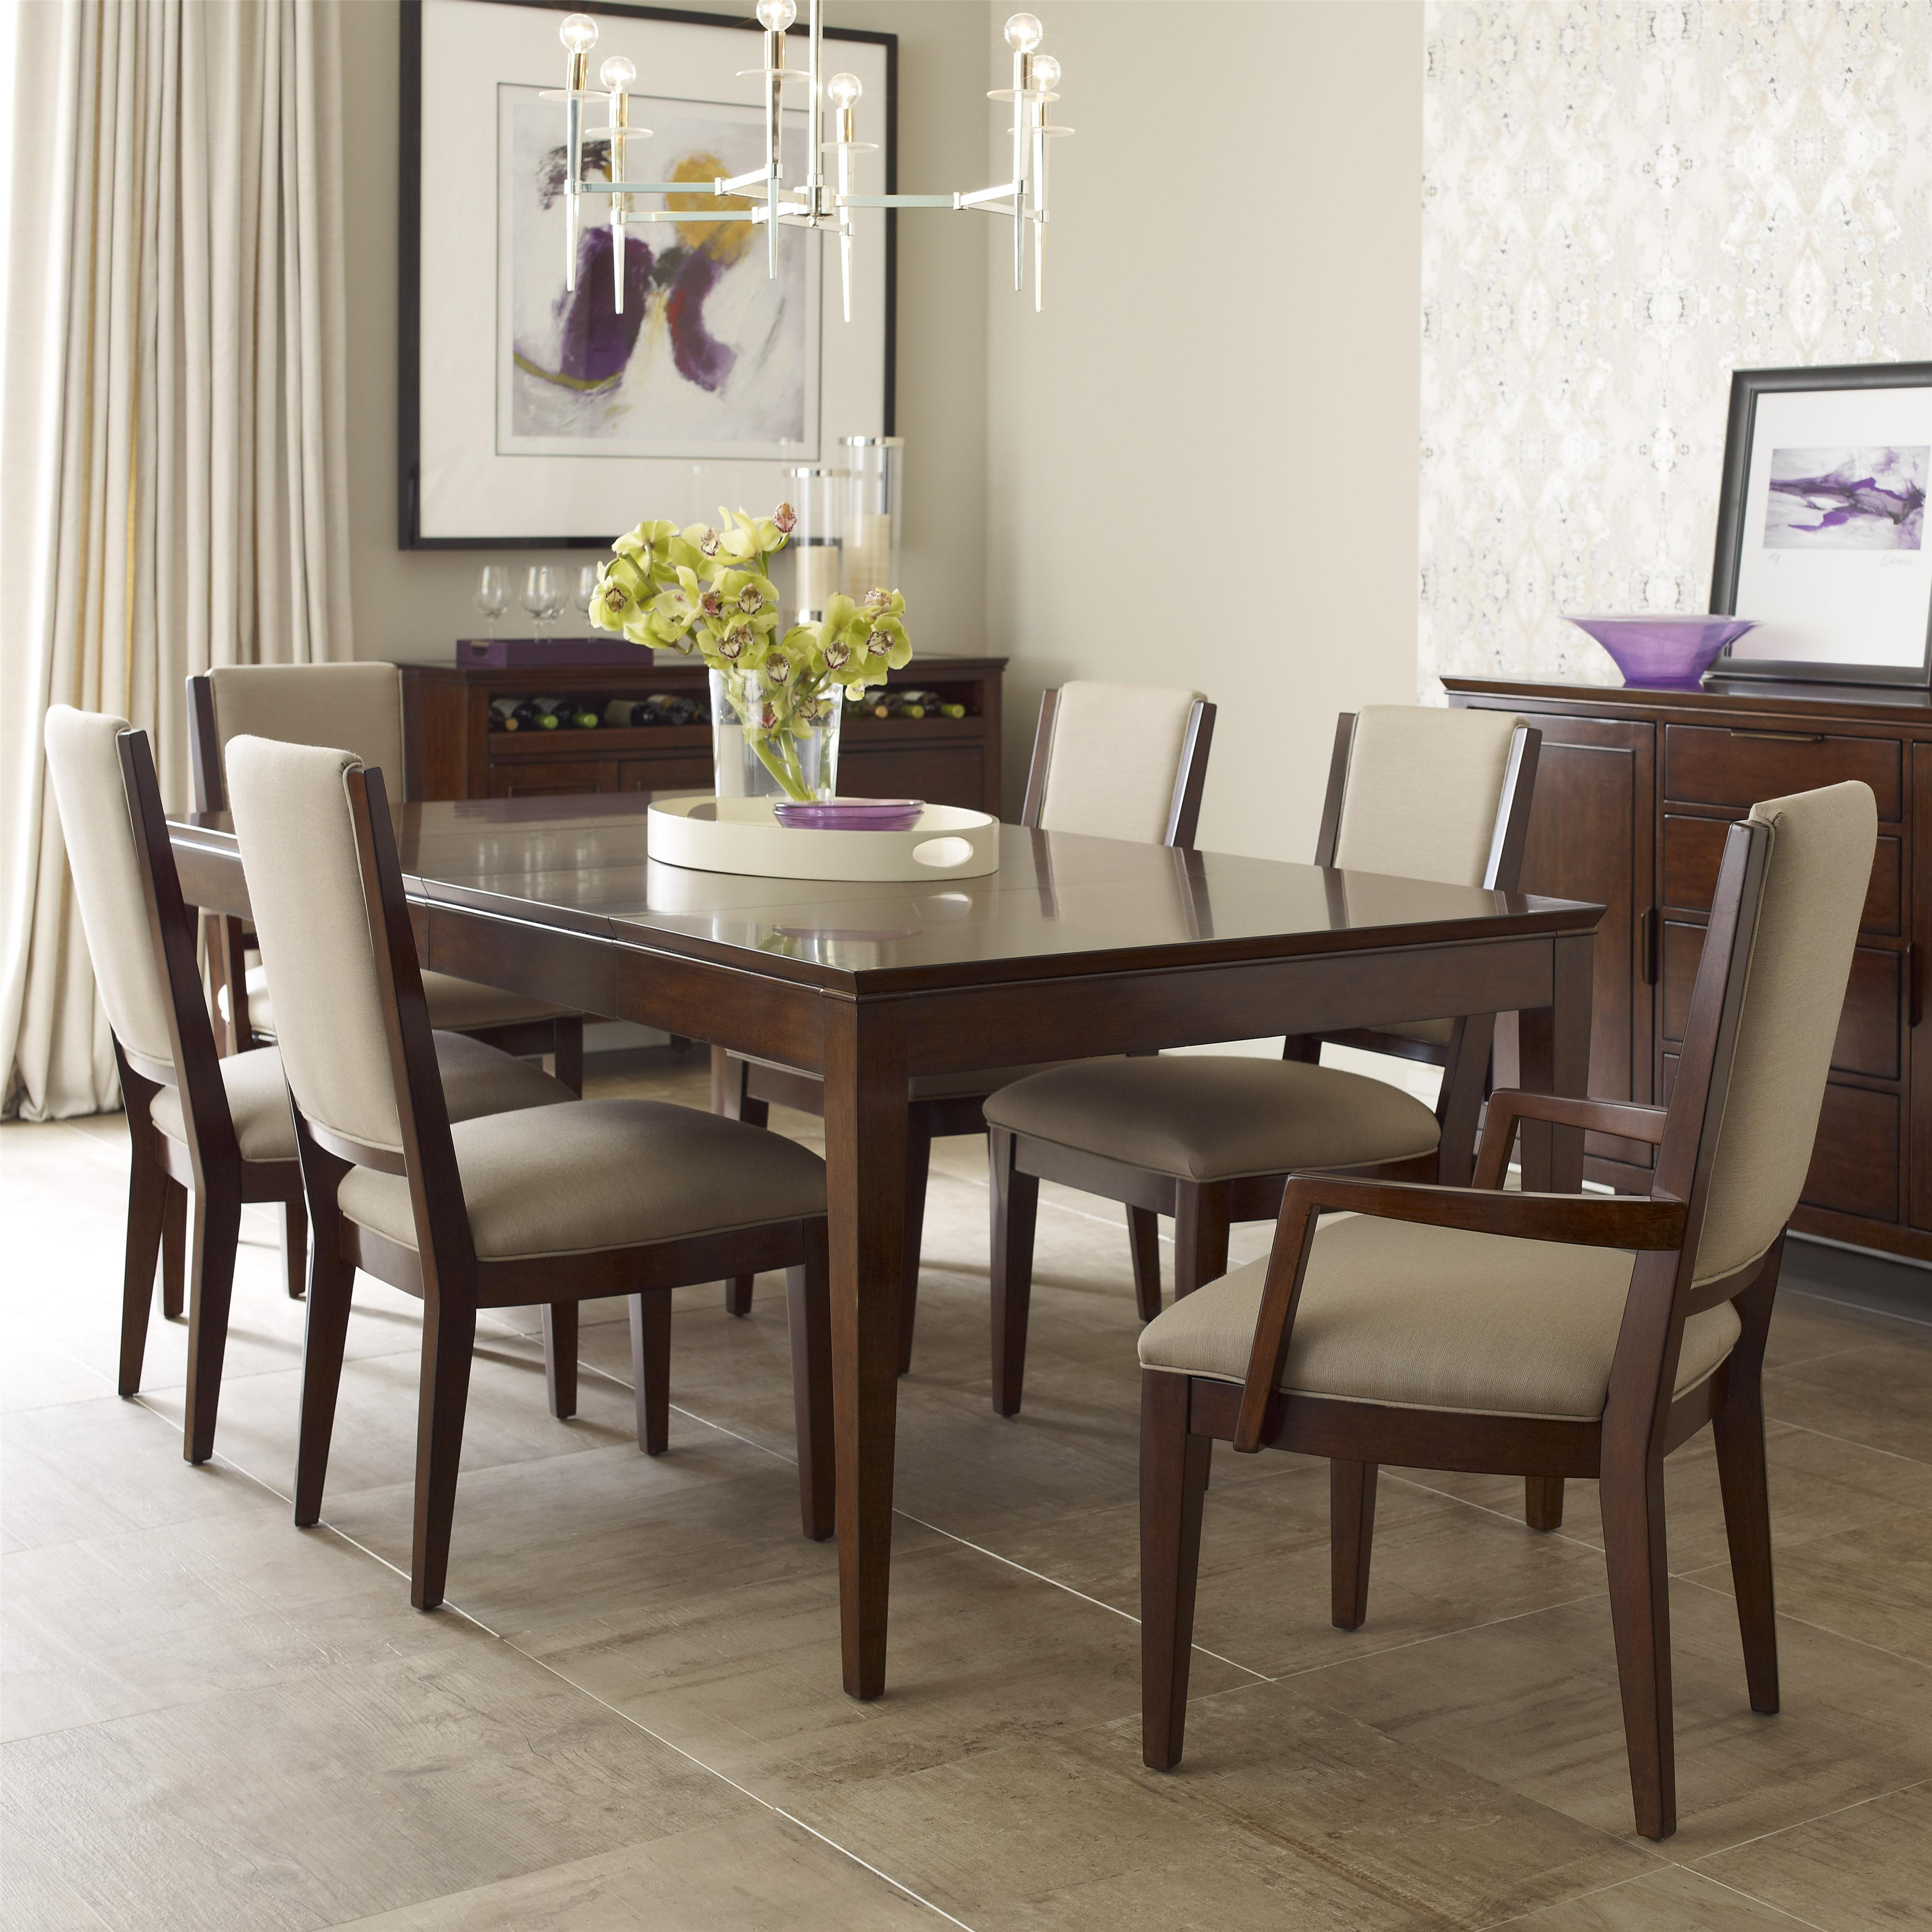 Kincaid Dining Room Set: Kincaid Furniture Elise Seven Piece Dining Set With Upholstered Chairs